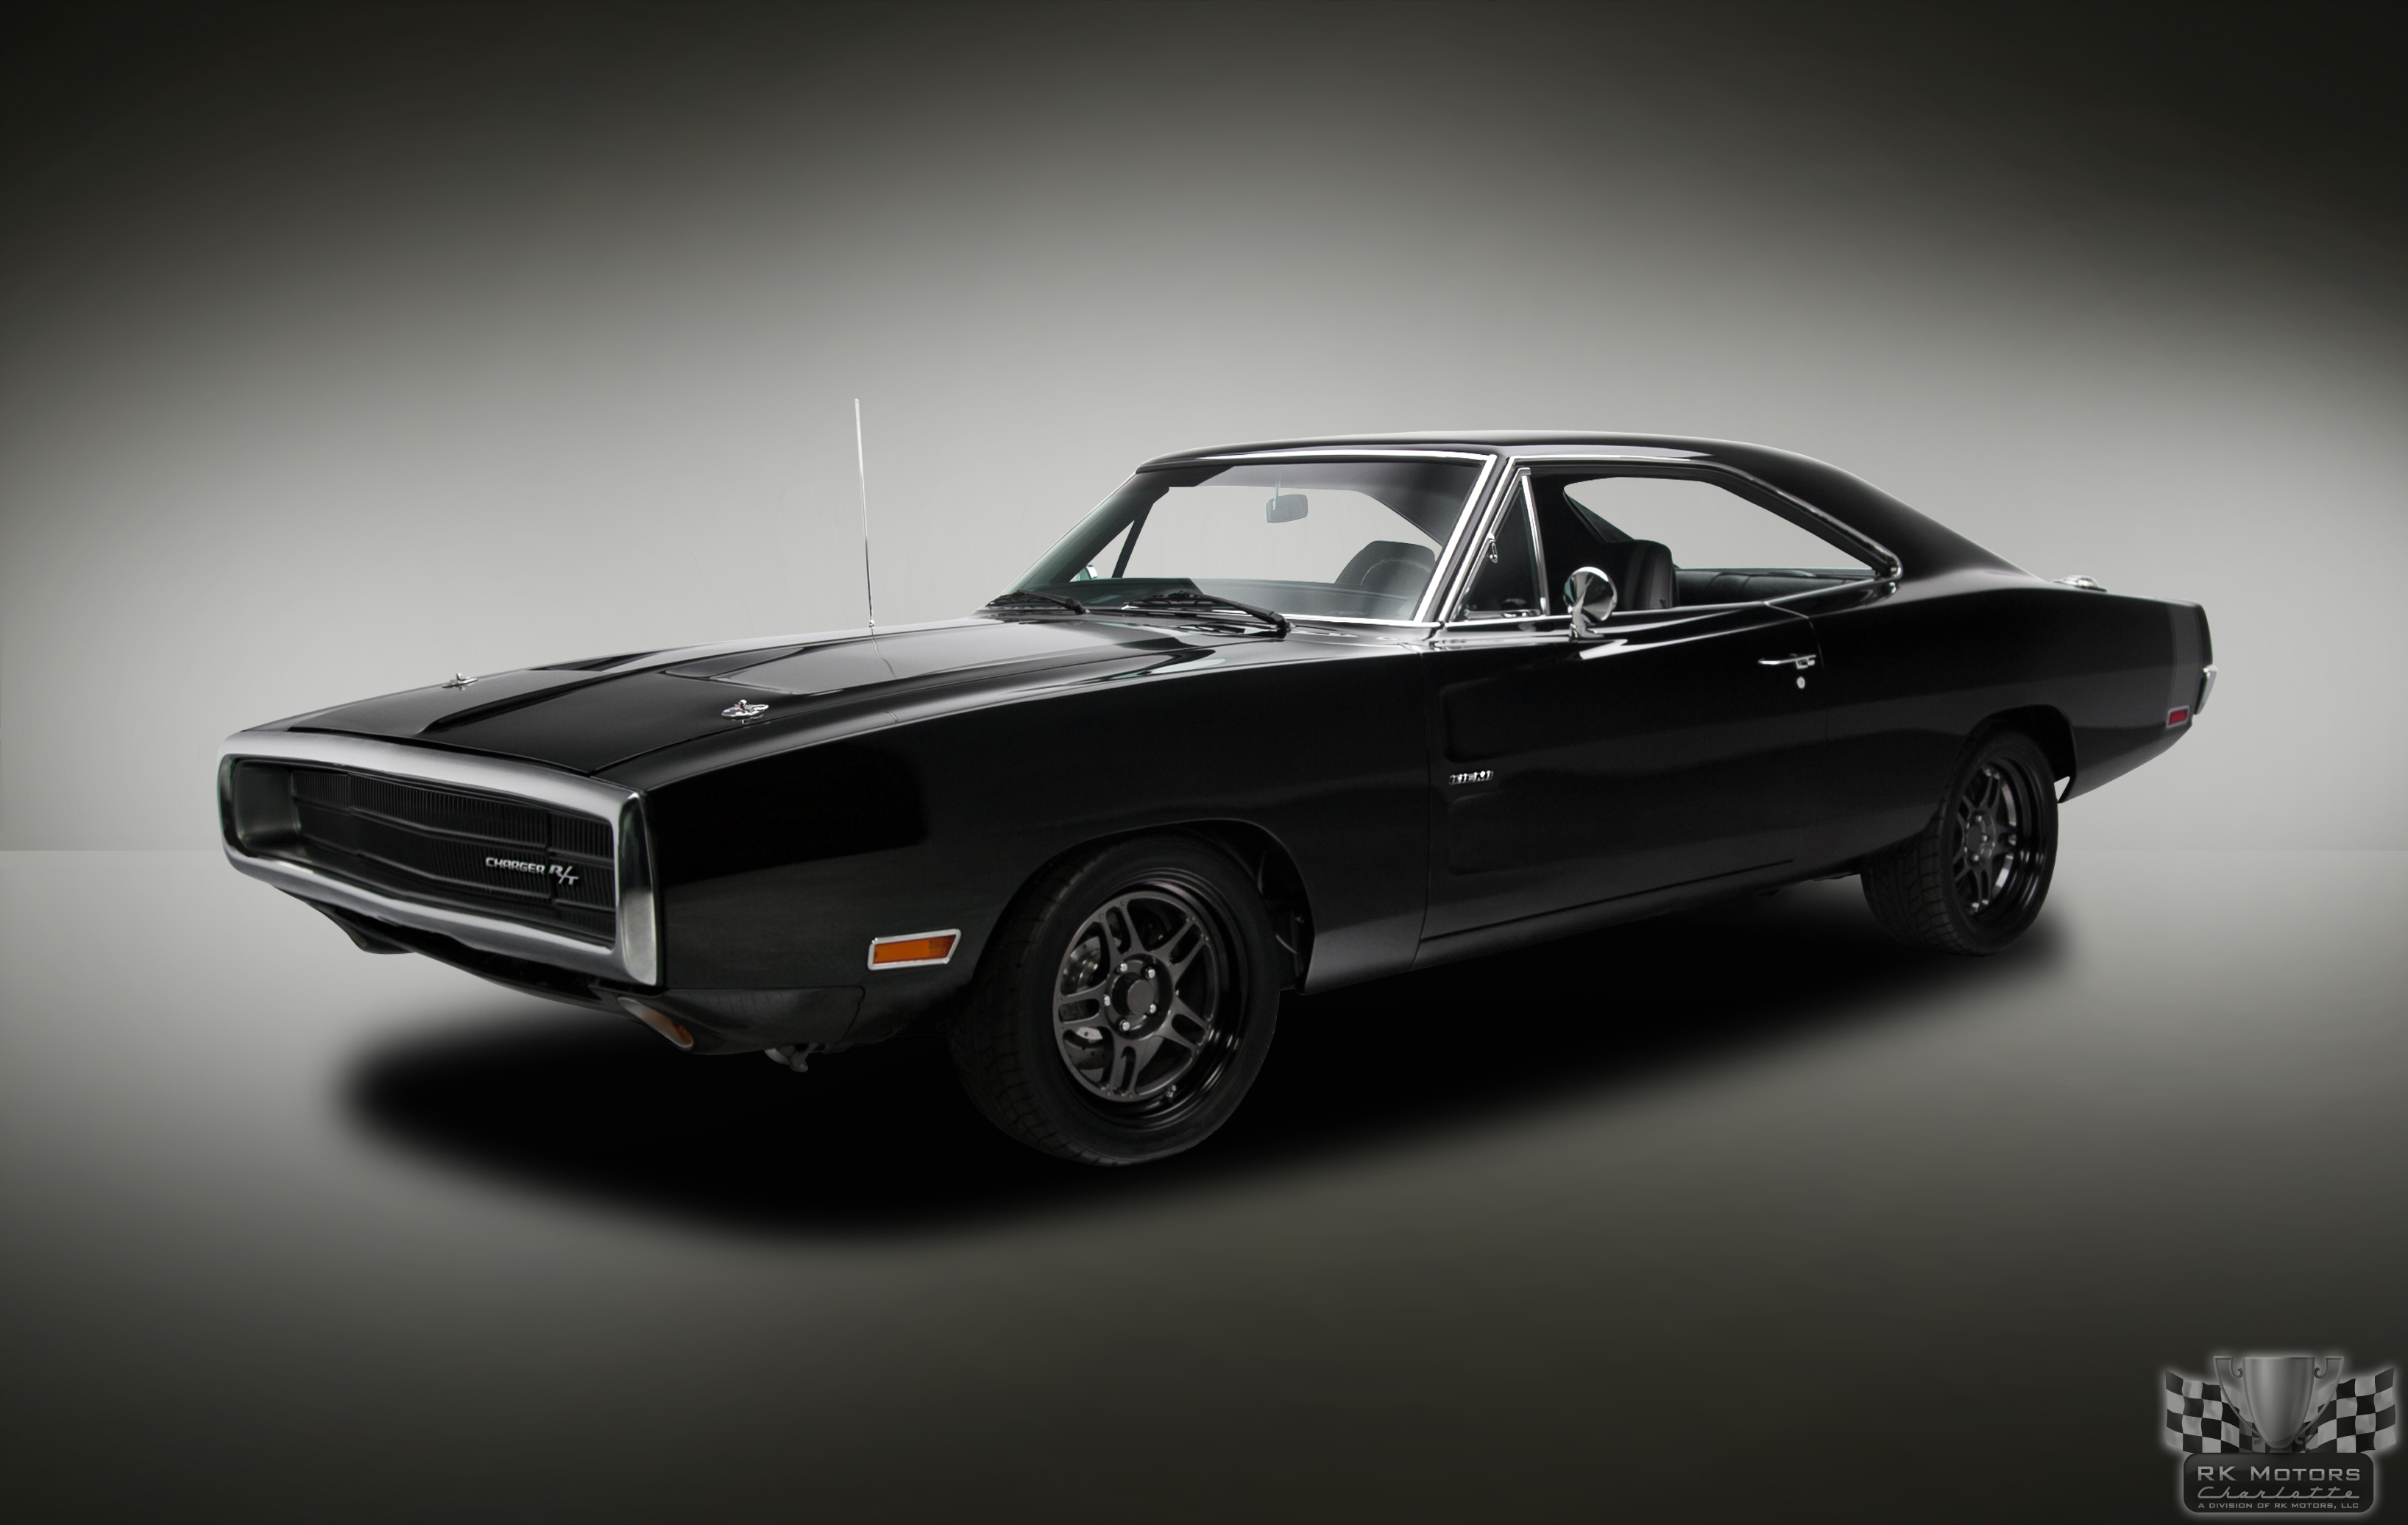 CHARGER R-T INDY 426 HEMI muscle cars wallpaper | 3272x2072 ...